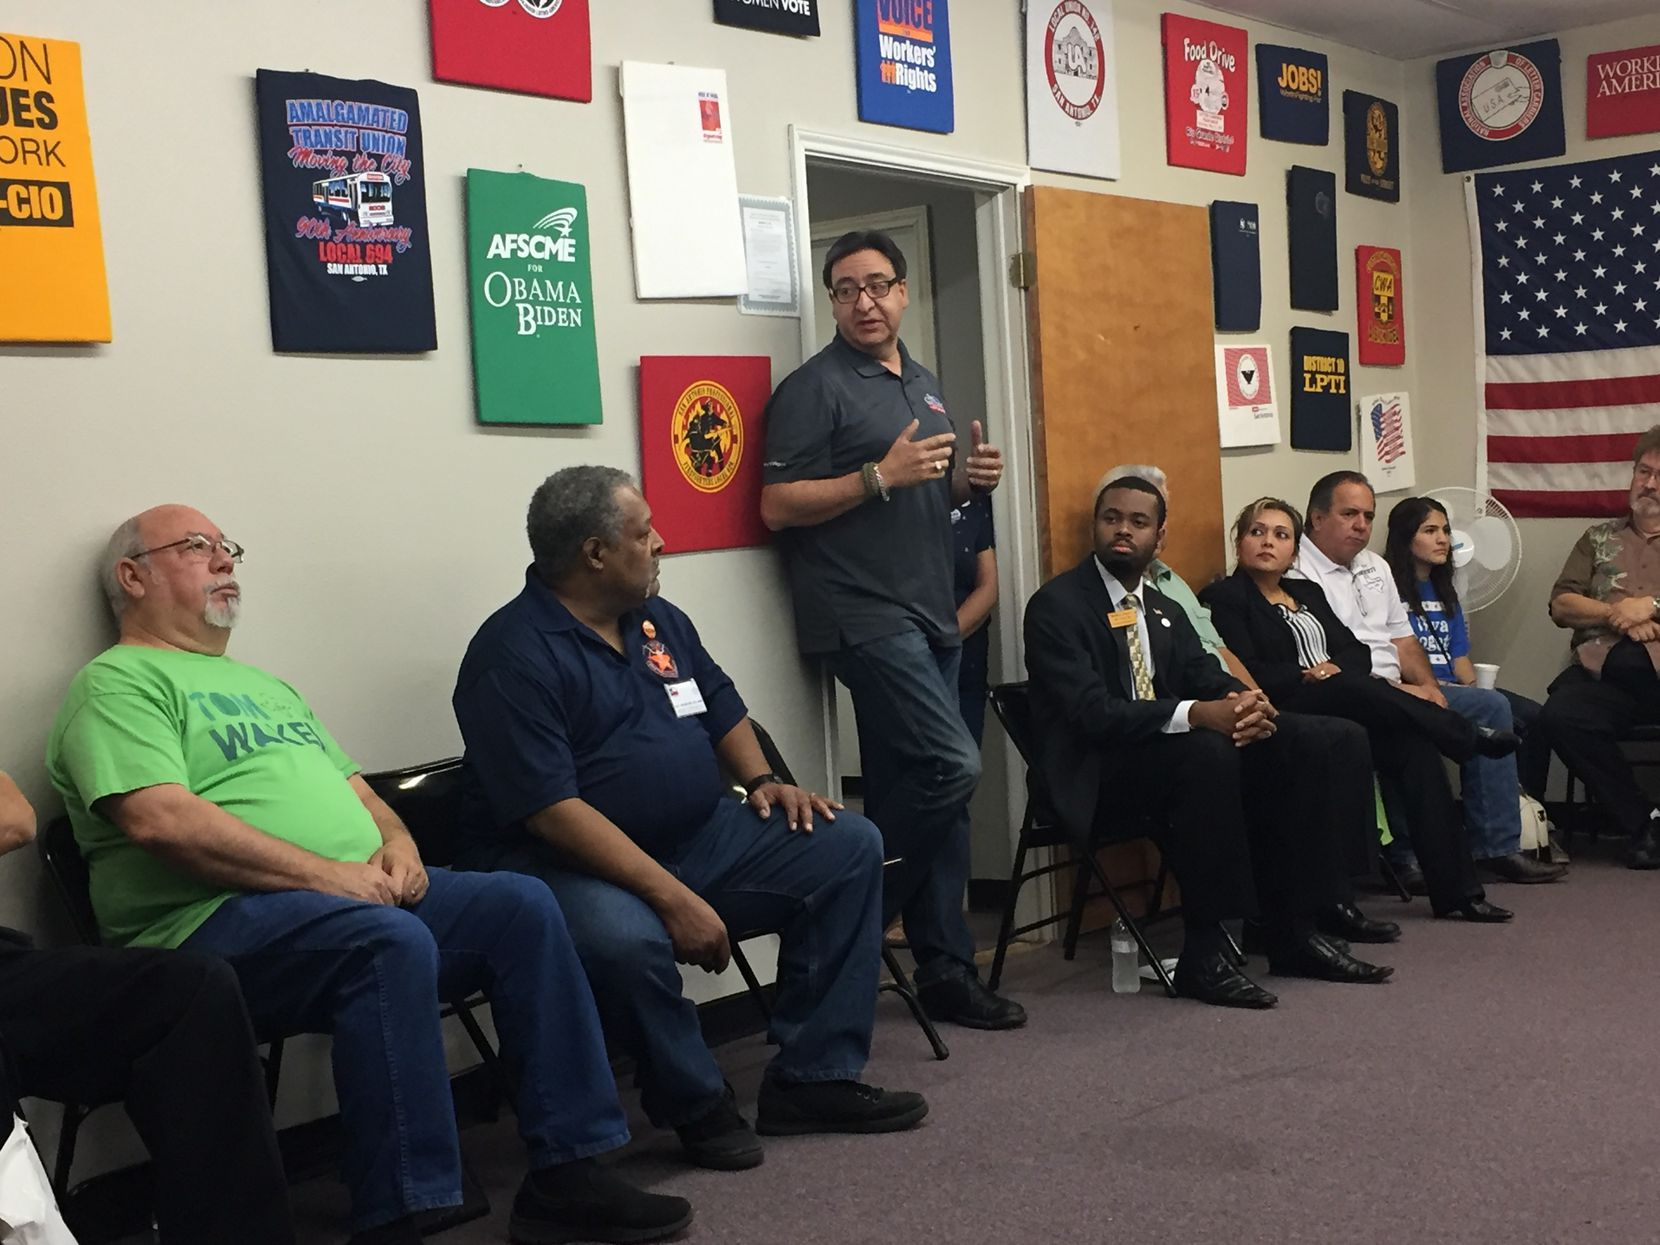 Democrat Pete Gallego, seeking to regain the congressional seat he lost to Republican Will Hurd in 2014, spoke to members of the San Antonio AFL-CIO Council about the race this month.